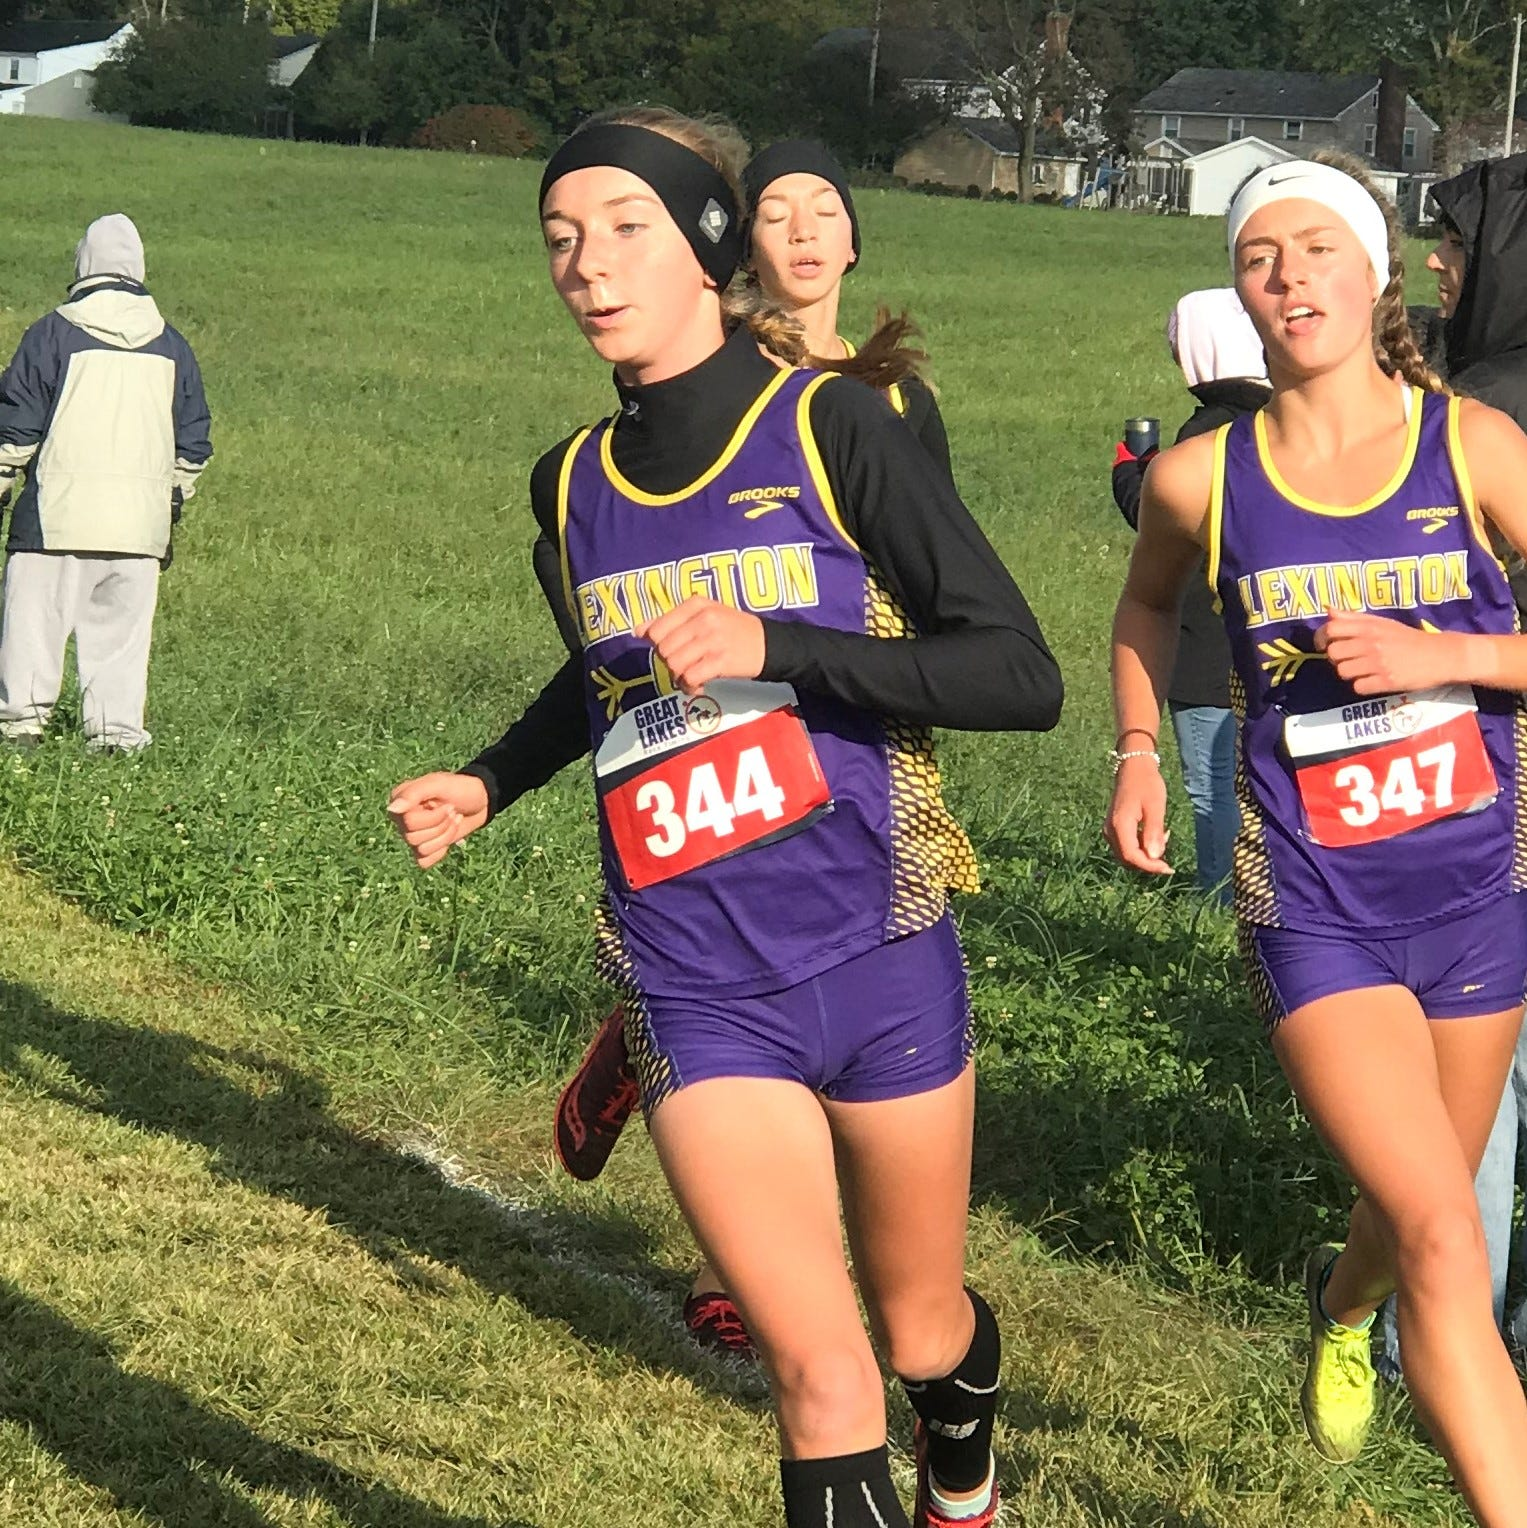 Lexington girls, Ashland boys win OCC cross country titles; Johnston wins as individual